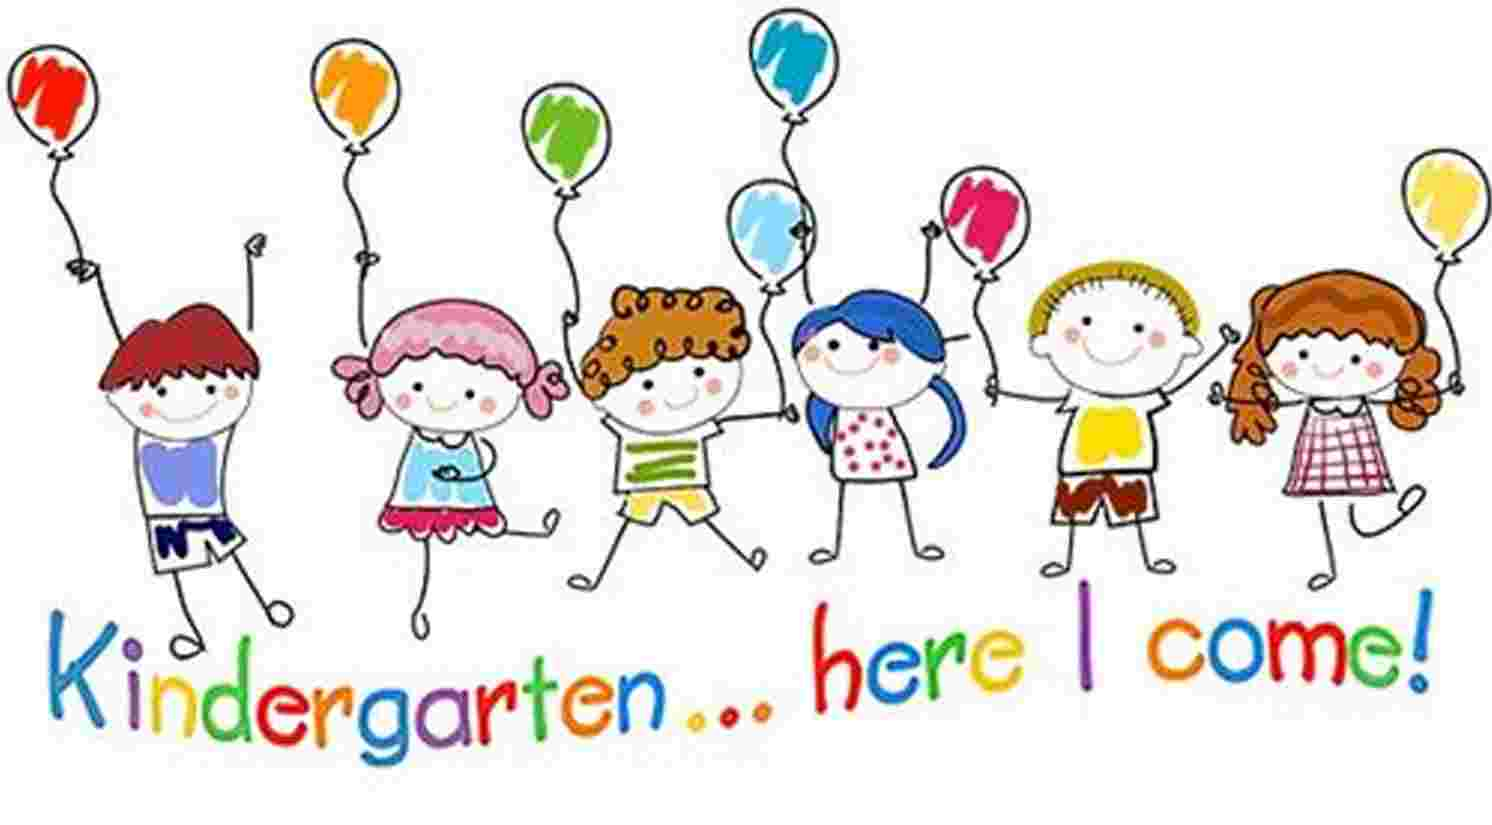 Cliparts Library: School Kindergarten Clipart 74 Free.